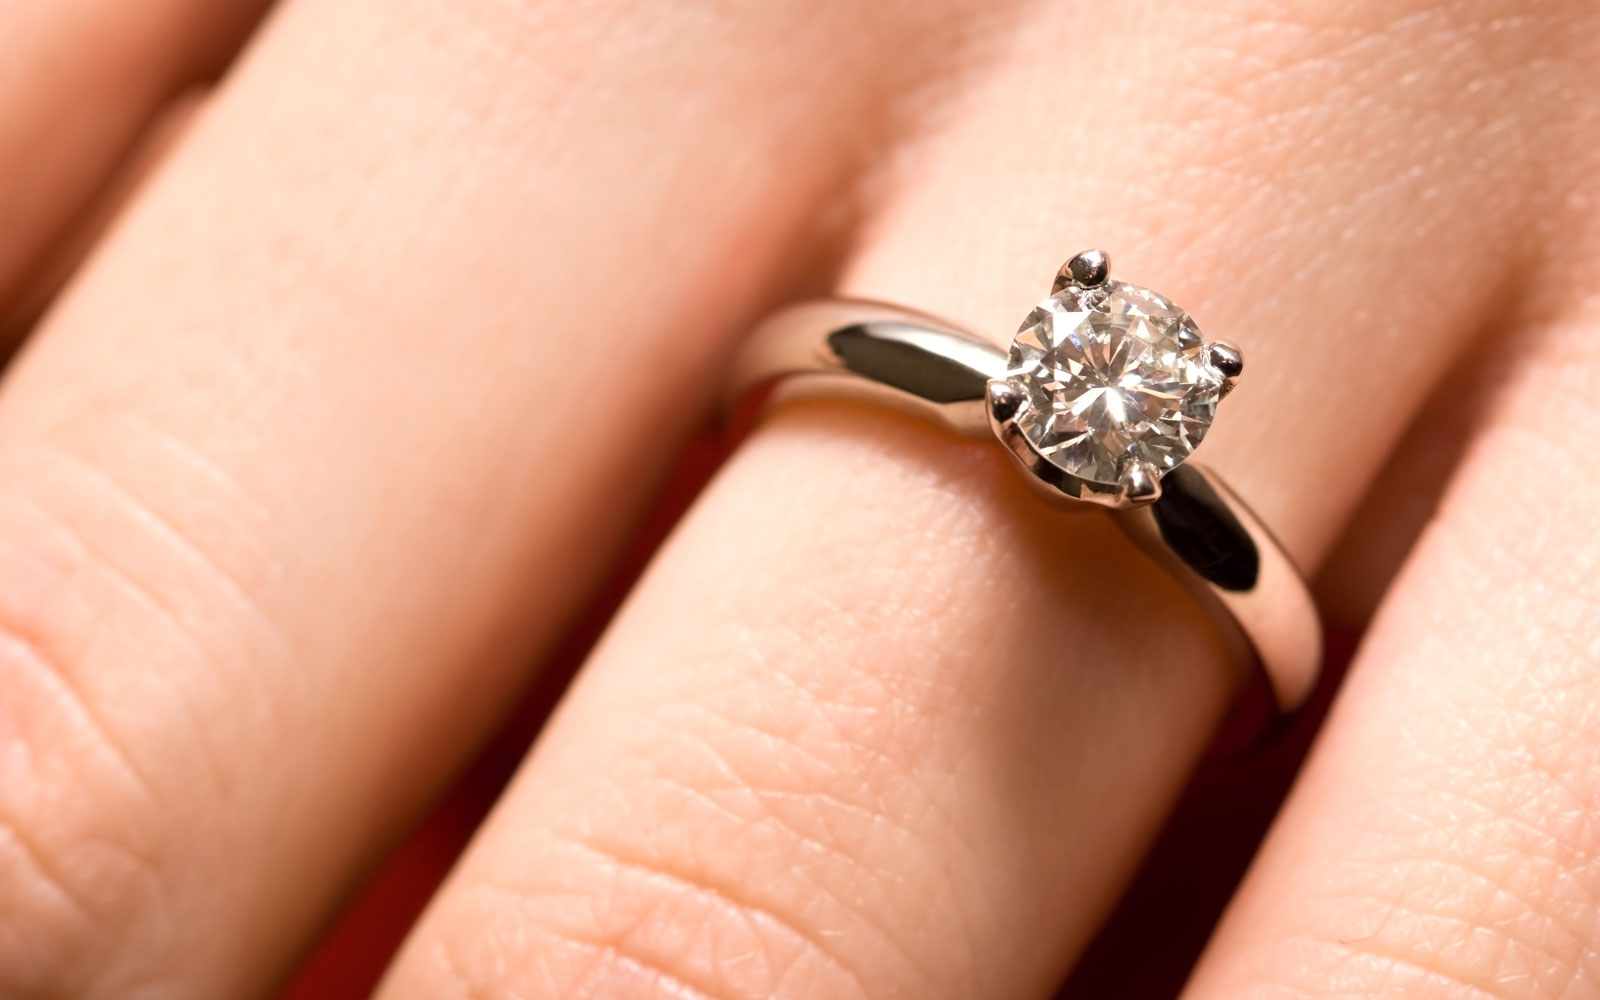 United Pilot Flies Passenger's Lost Engagement Ring Back To Her